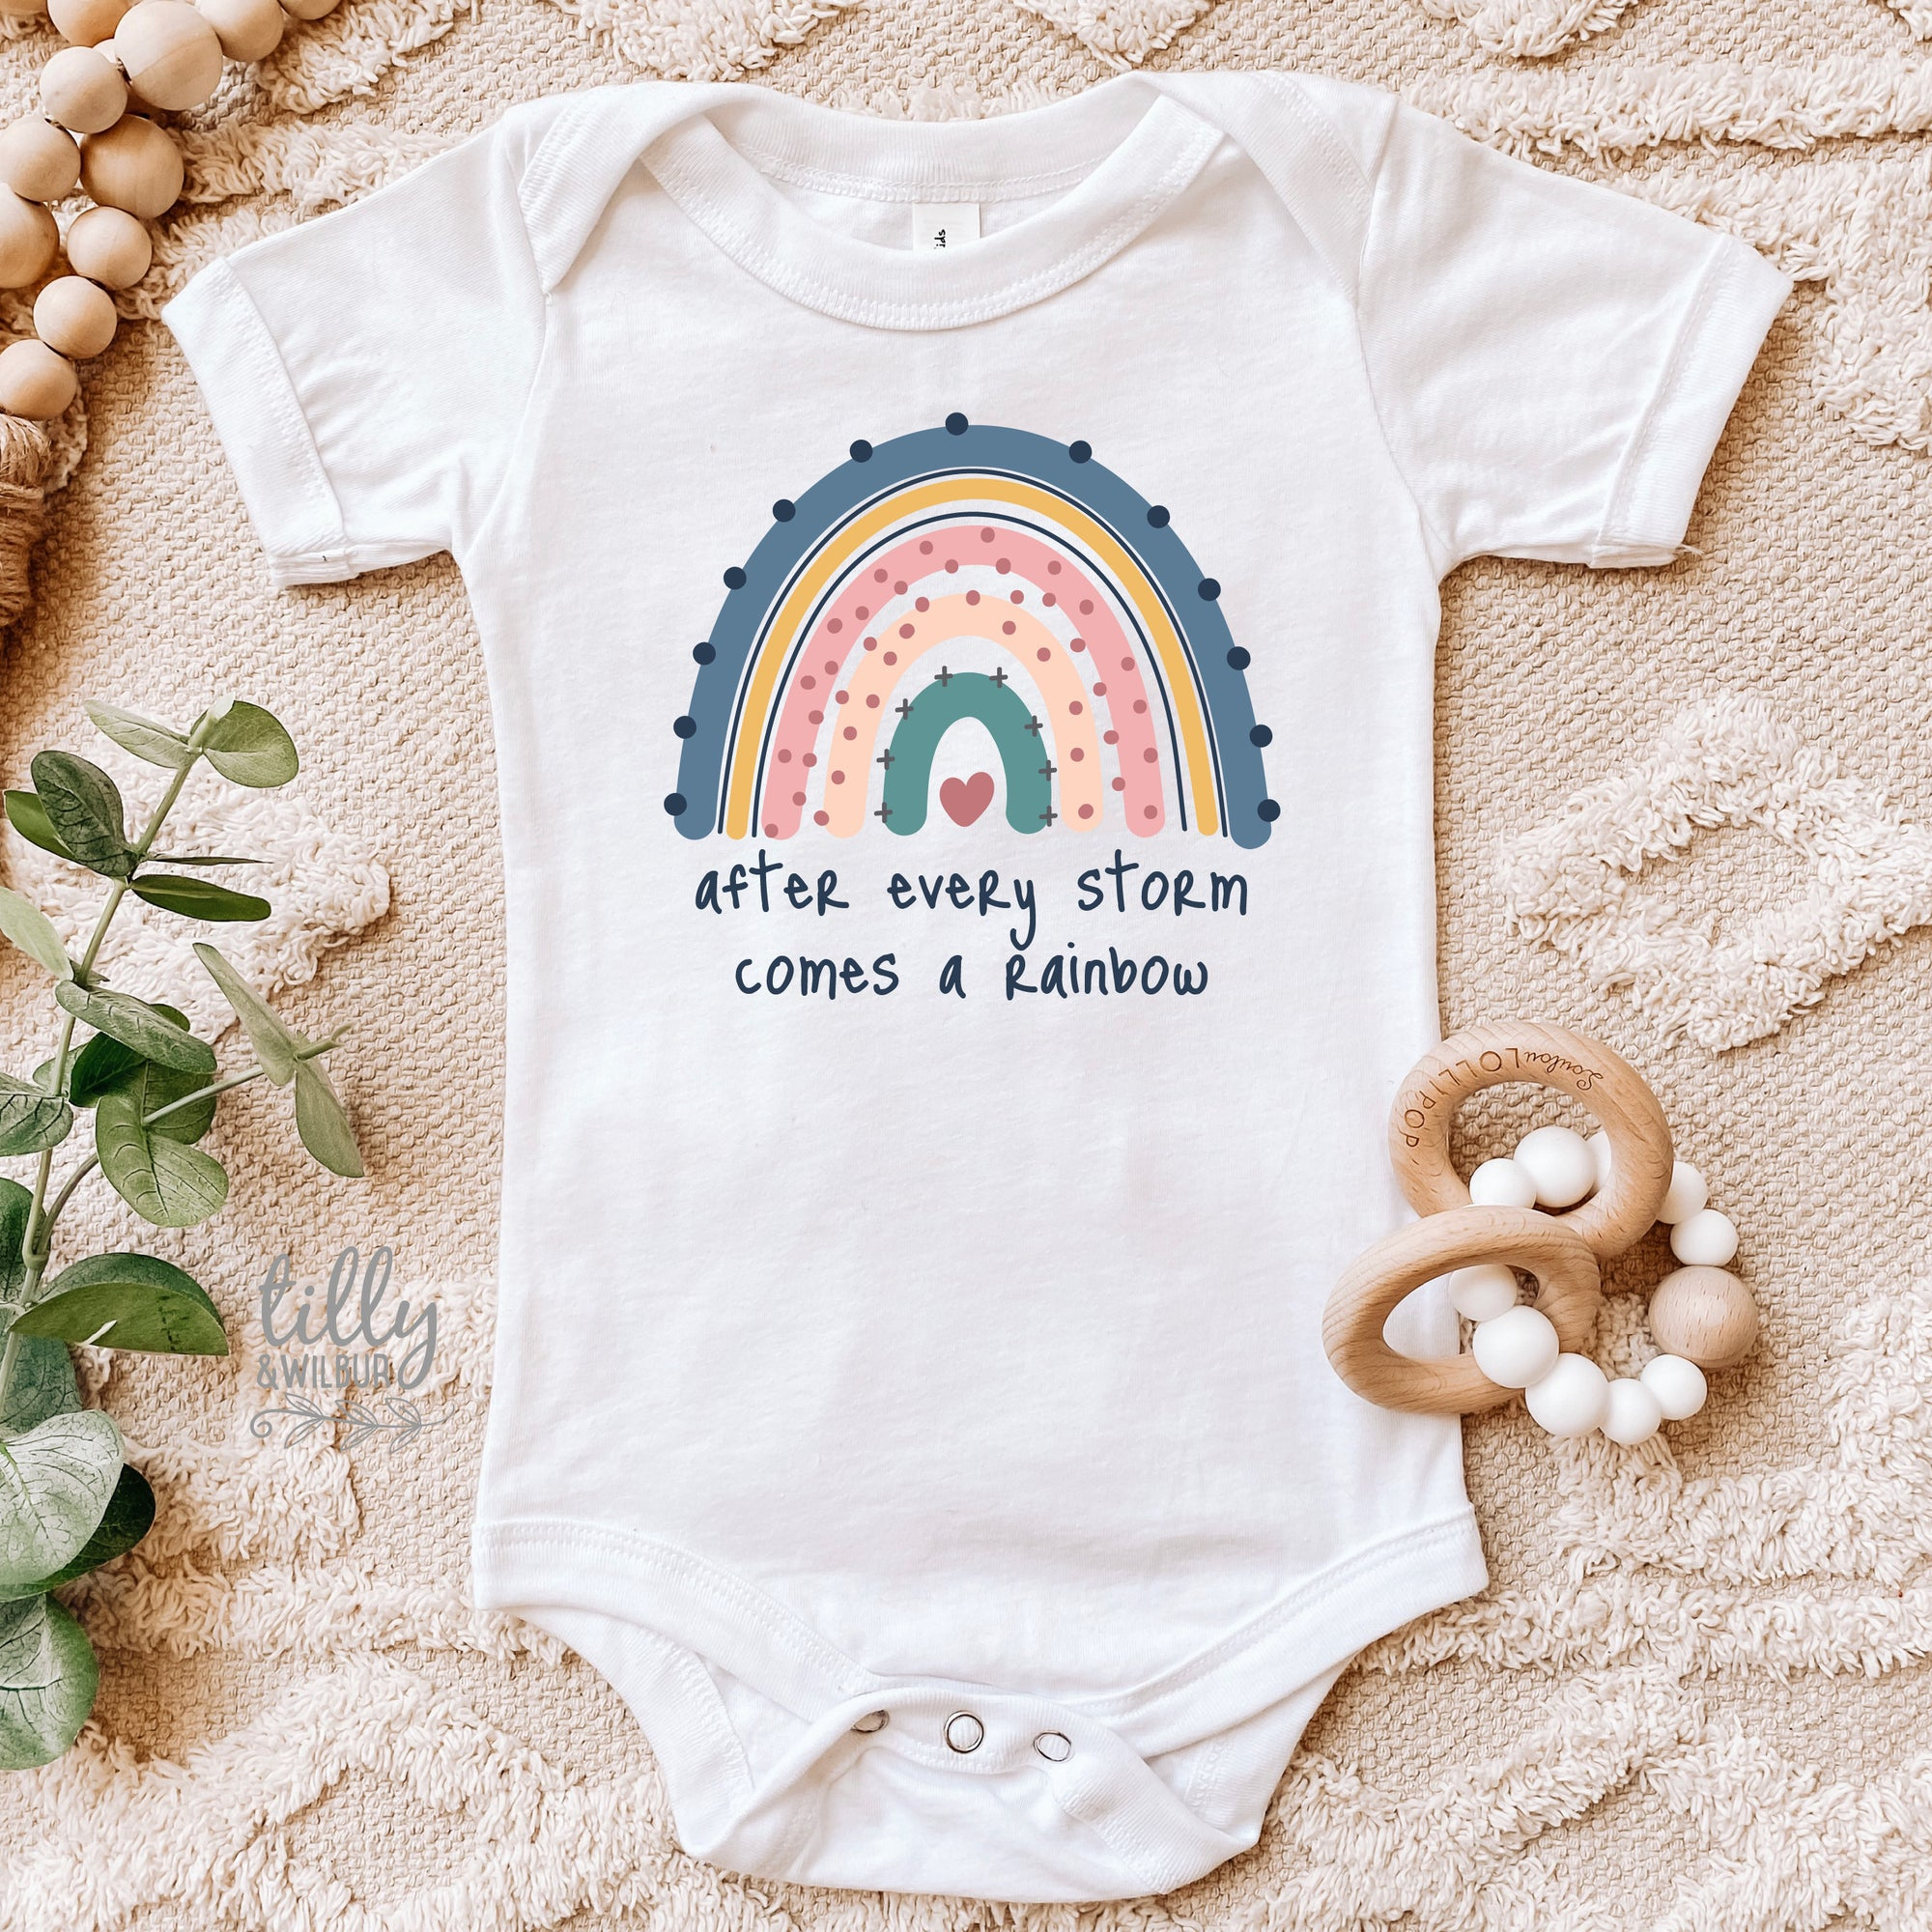 After Every Storm Comes A Rainbow Baby Bodysuit, Pregnancy Announcement Bodysuit, Rainbow Baby, Newborn Baby Gift, Baby Shower Gift, New Bub